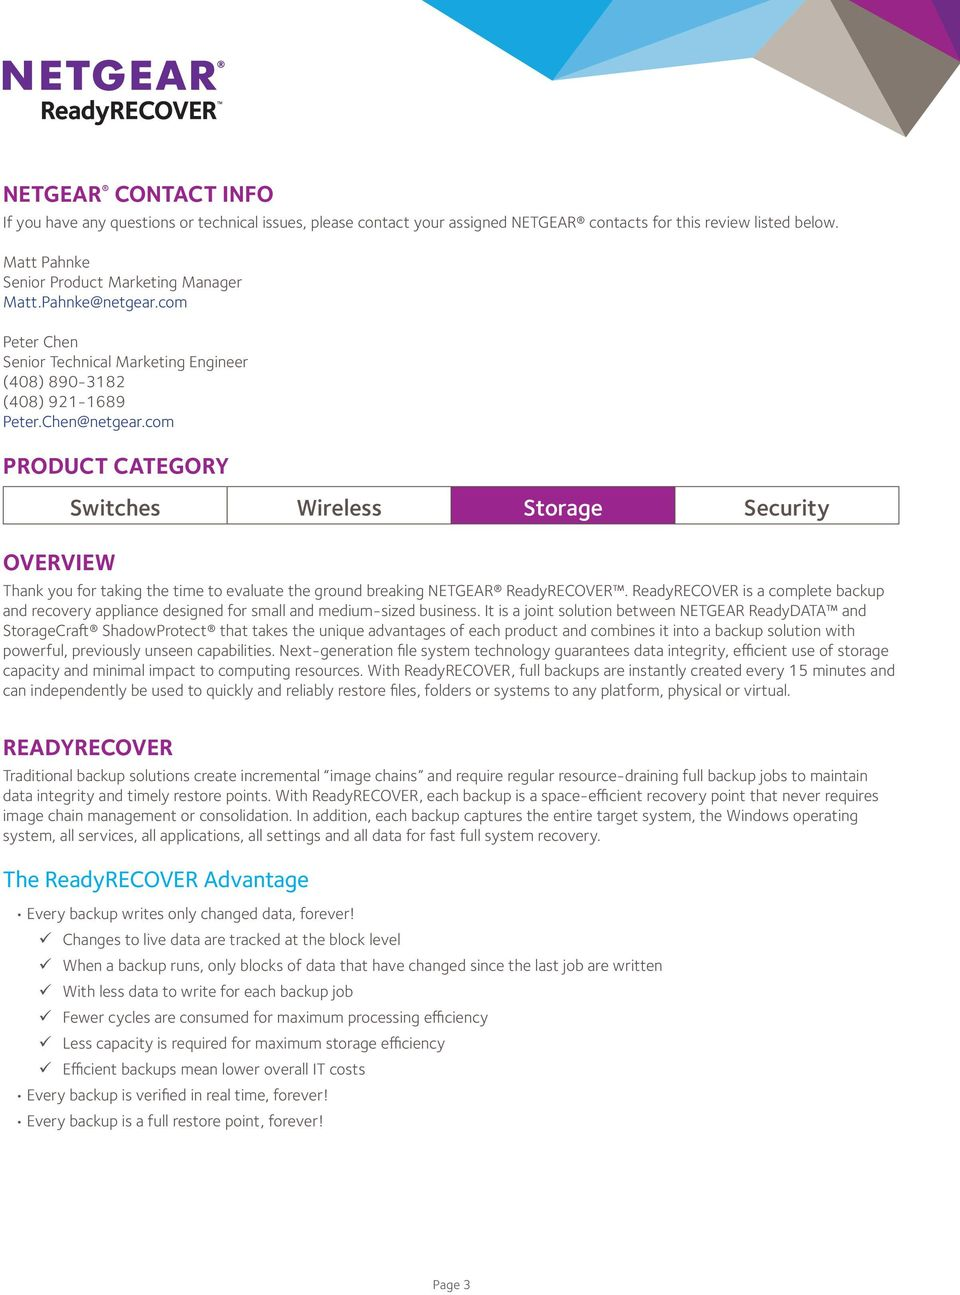 com Product Category Overview Switches Wireless Storage Security Thank you for taking the time to evaluate the ground breaking NETGEAR ReadyRECOVER.